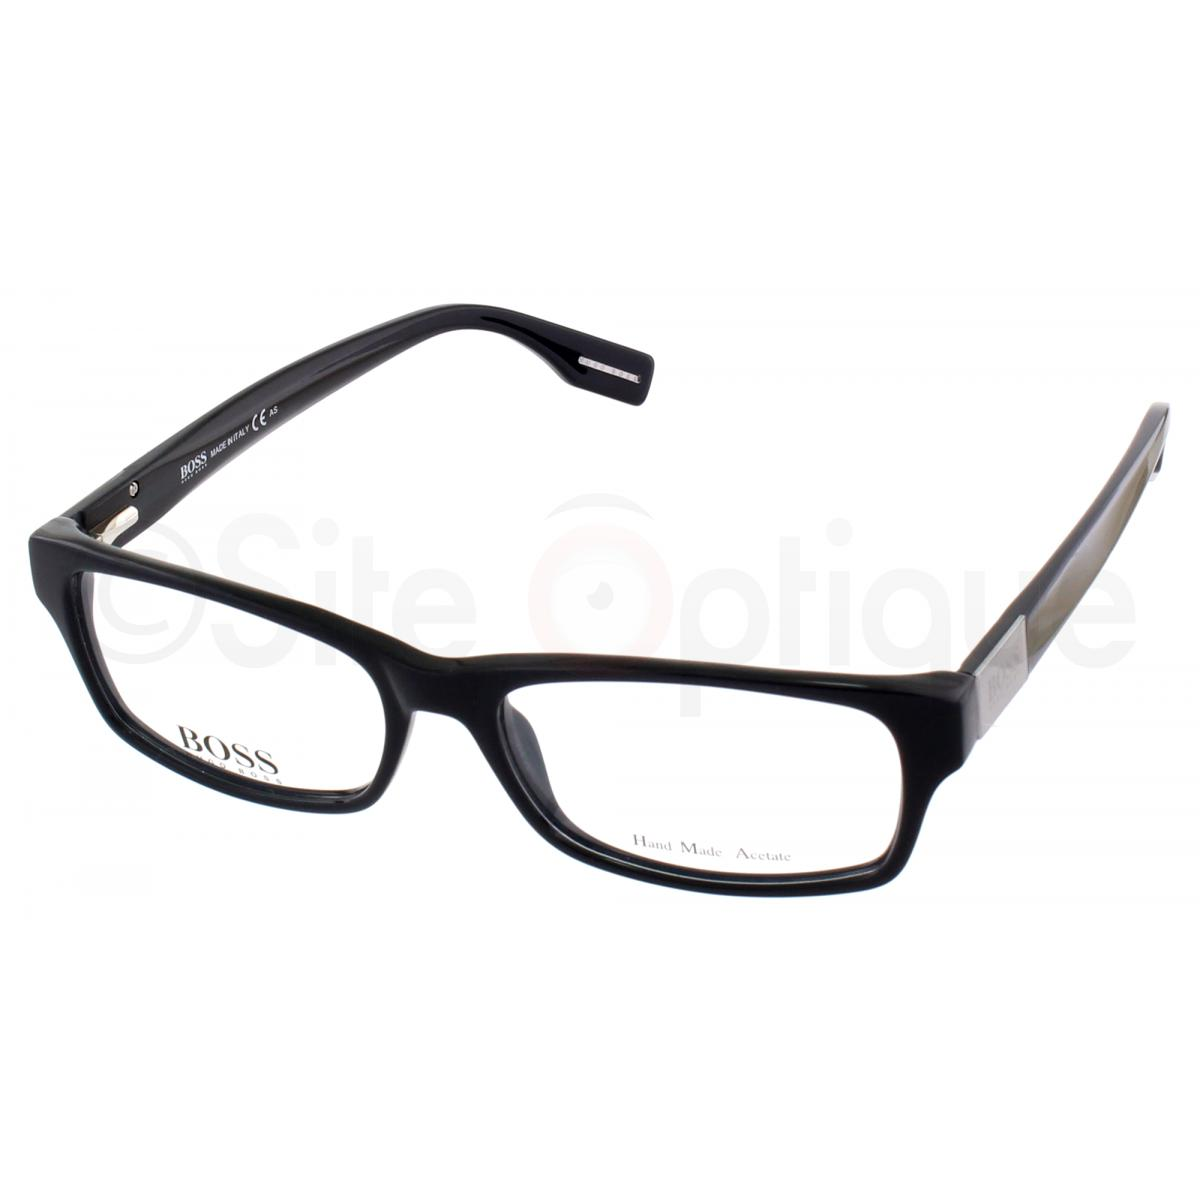 HUGO BOSS - BOSS 0324 – Site optique e3cc7a3b6e12